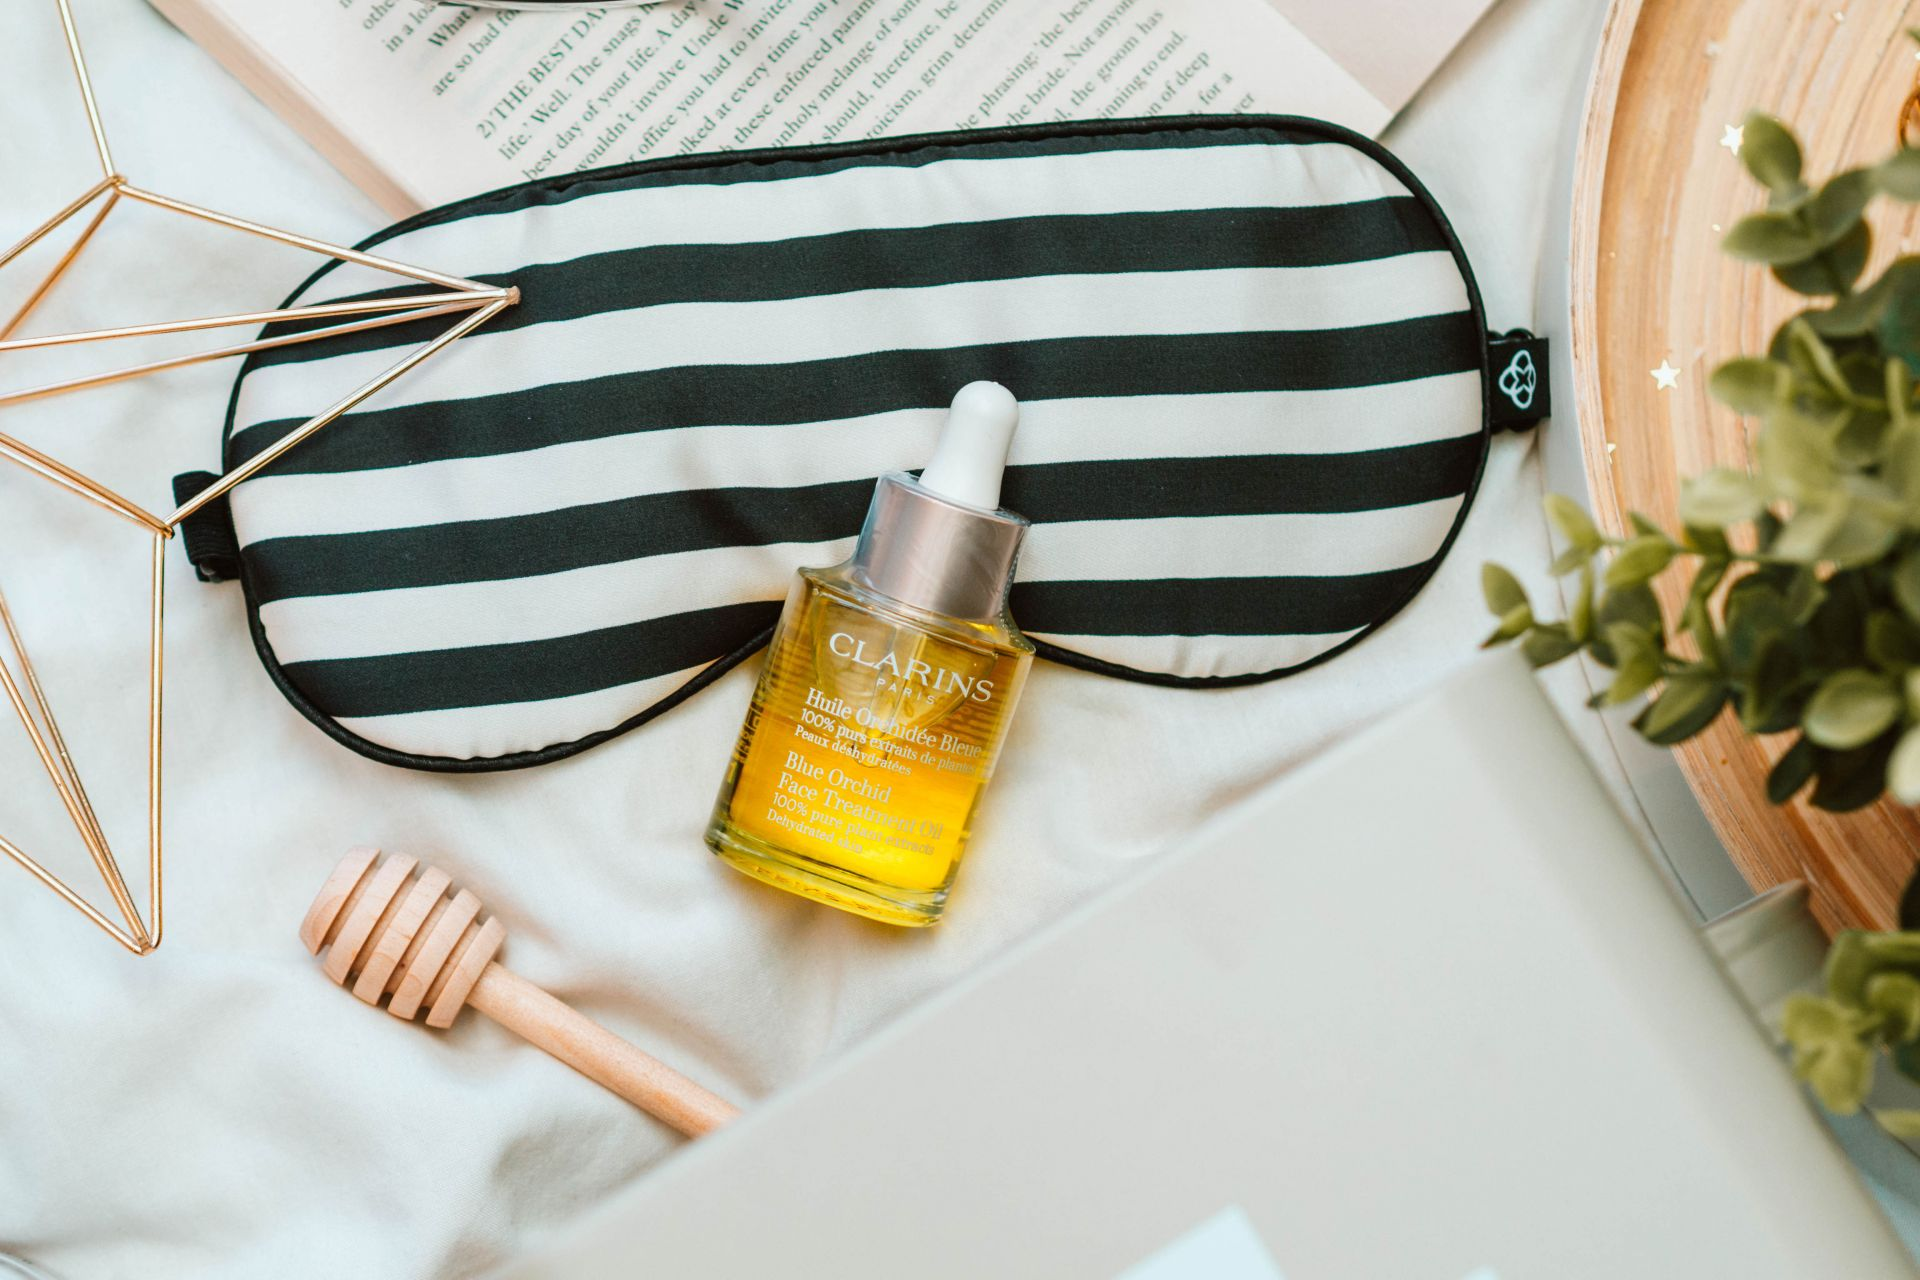 How to have a great skin month with the Clarins Blue Orchid Face Treatment Oil